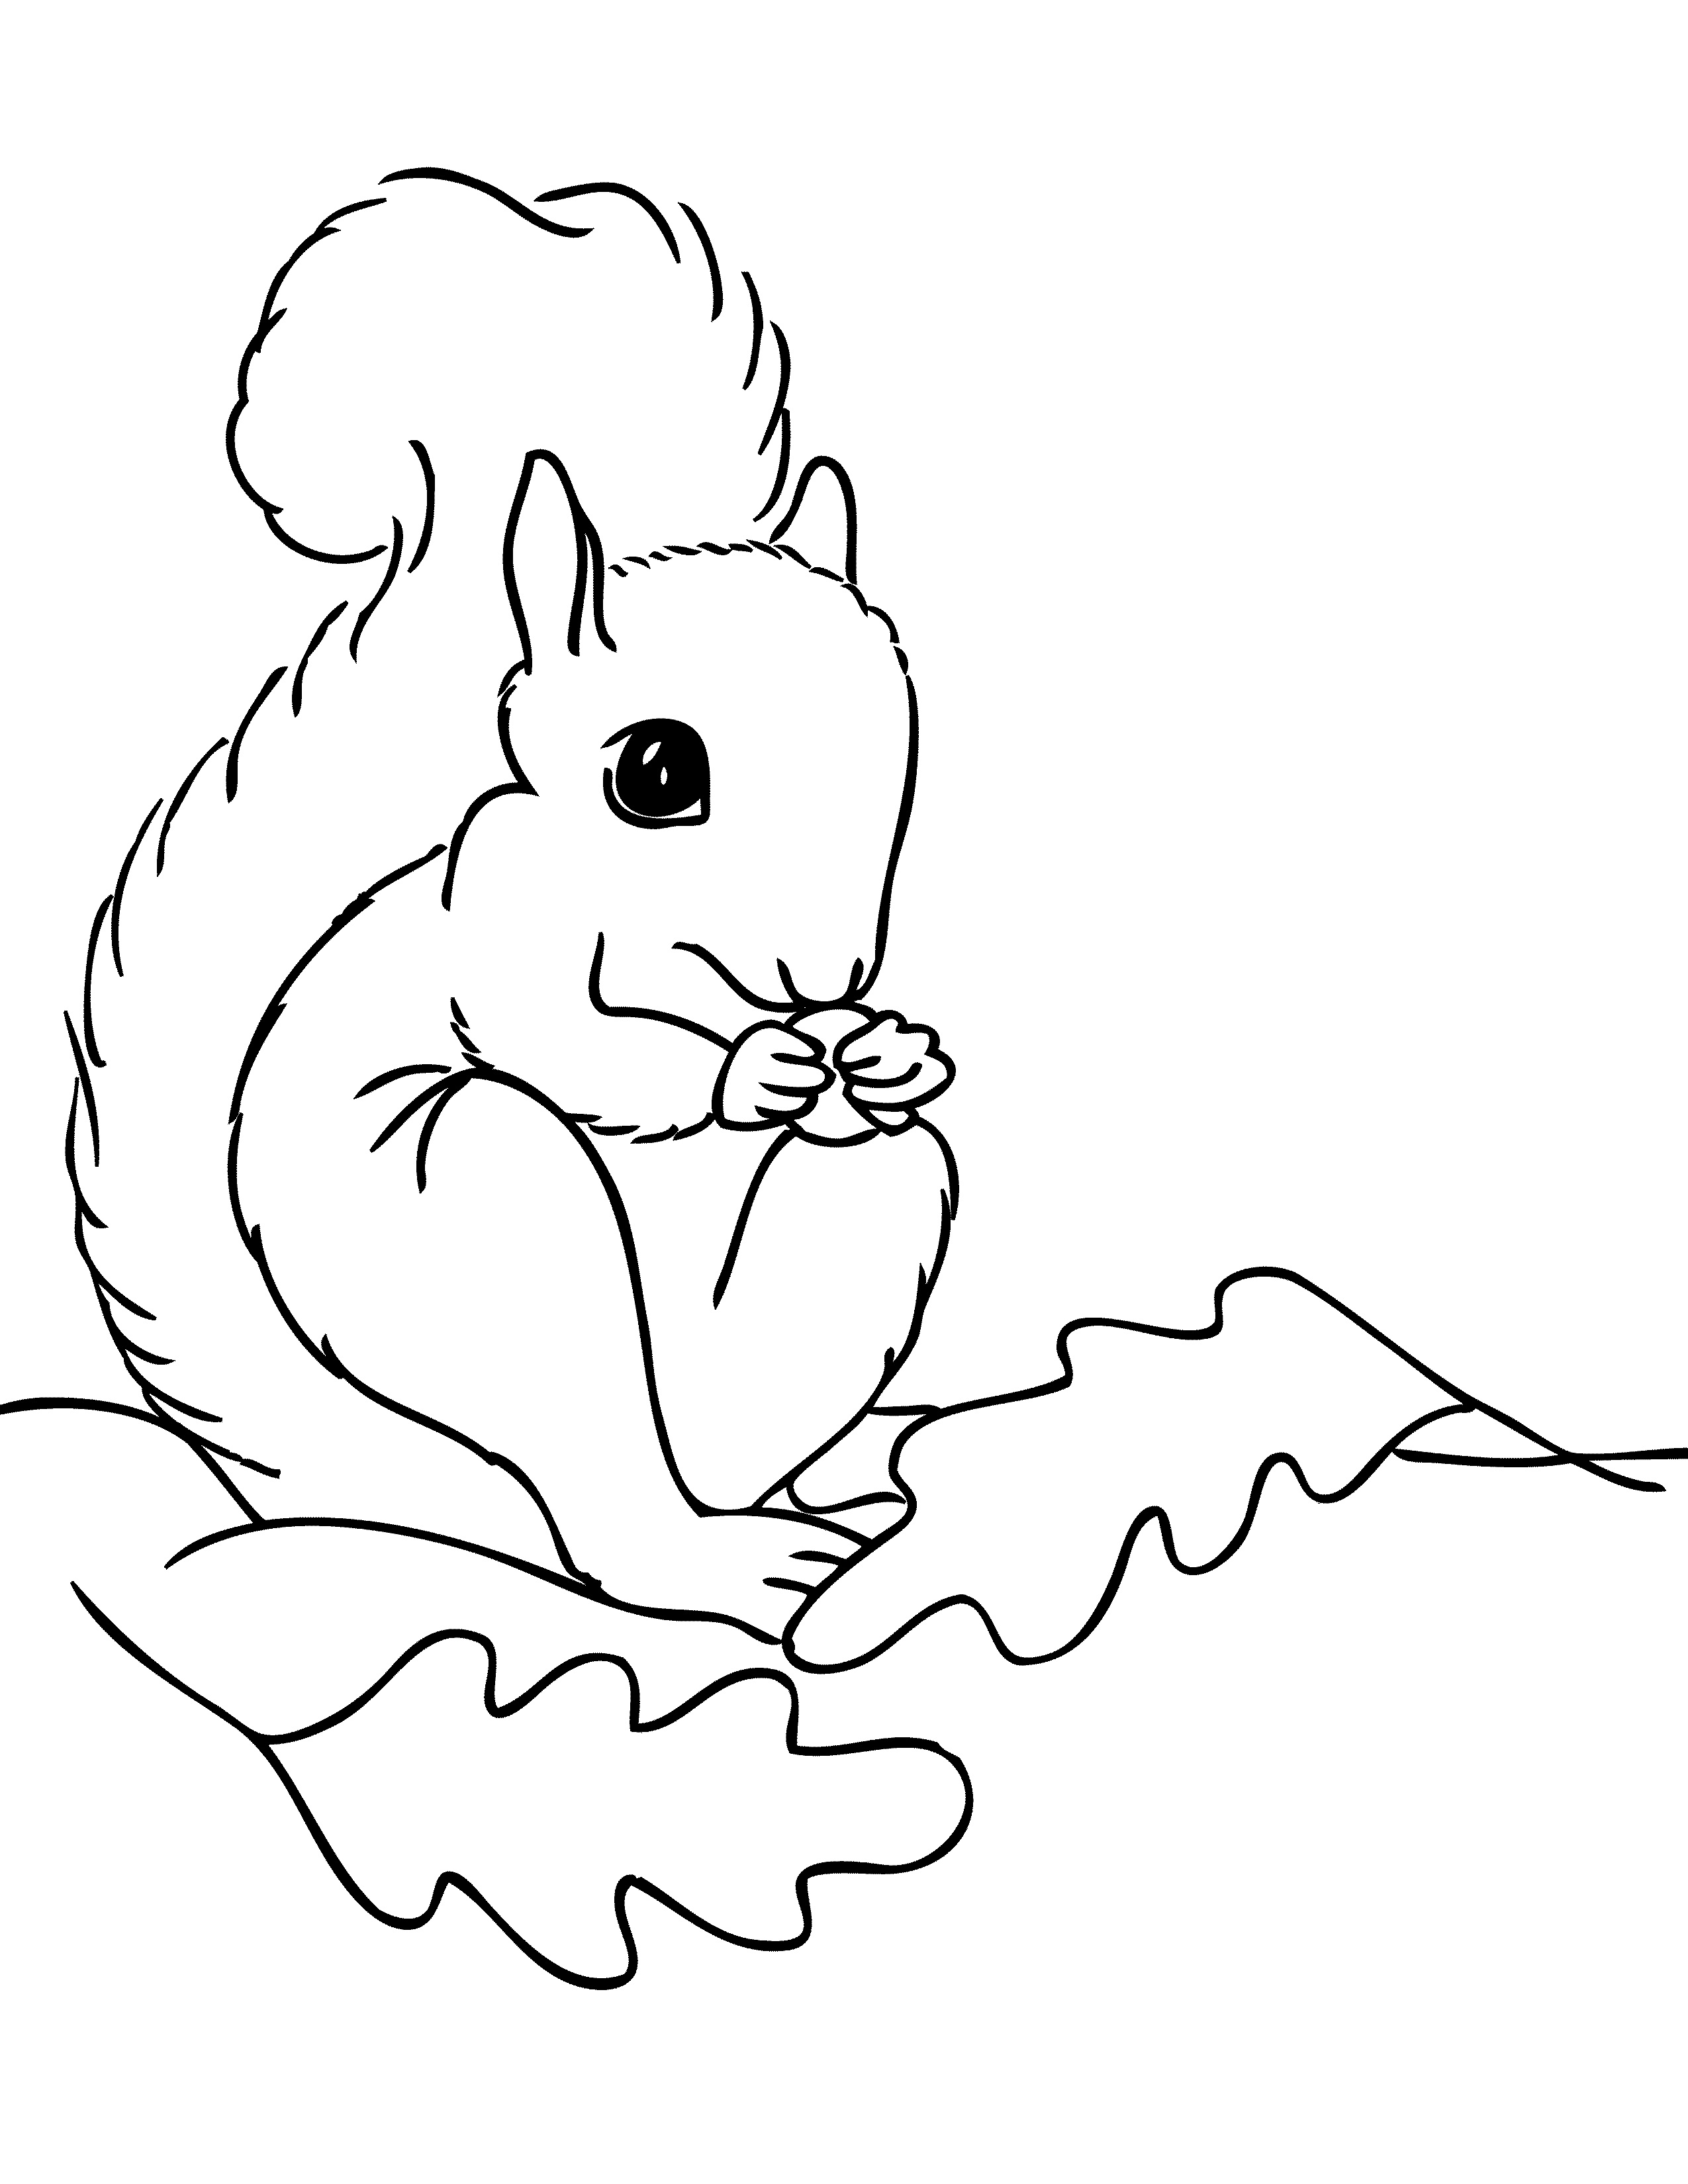 coloring pages of squirrels free squirrel coloring pages pages coloring squirrels of